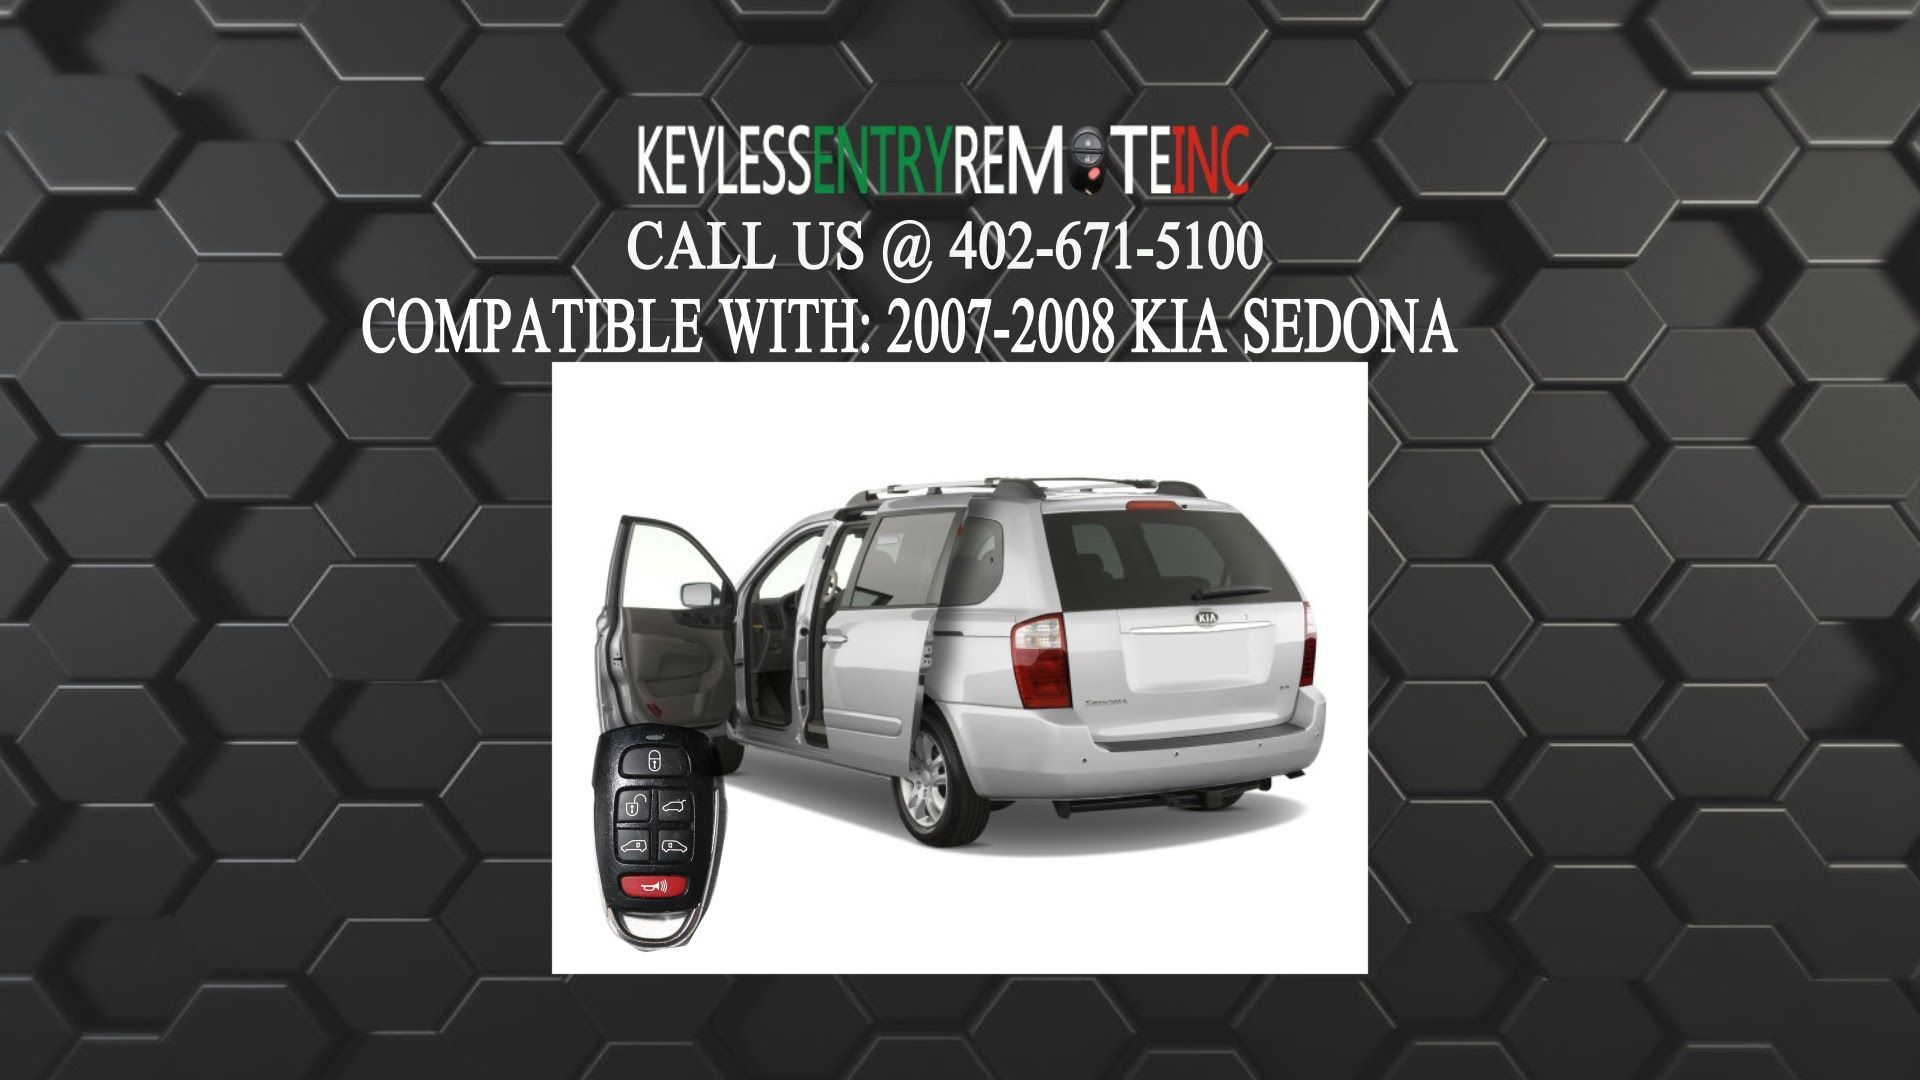 How To Replace Kia Sedona Key Fob Battery 2006 2014 Kia Sedona